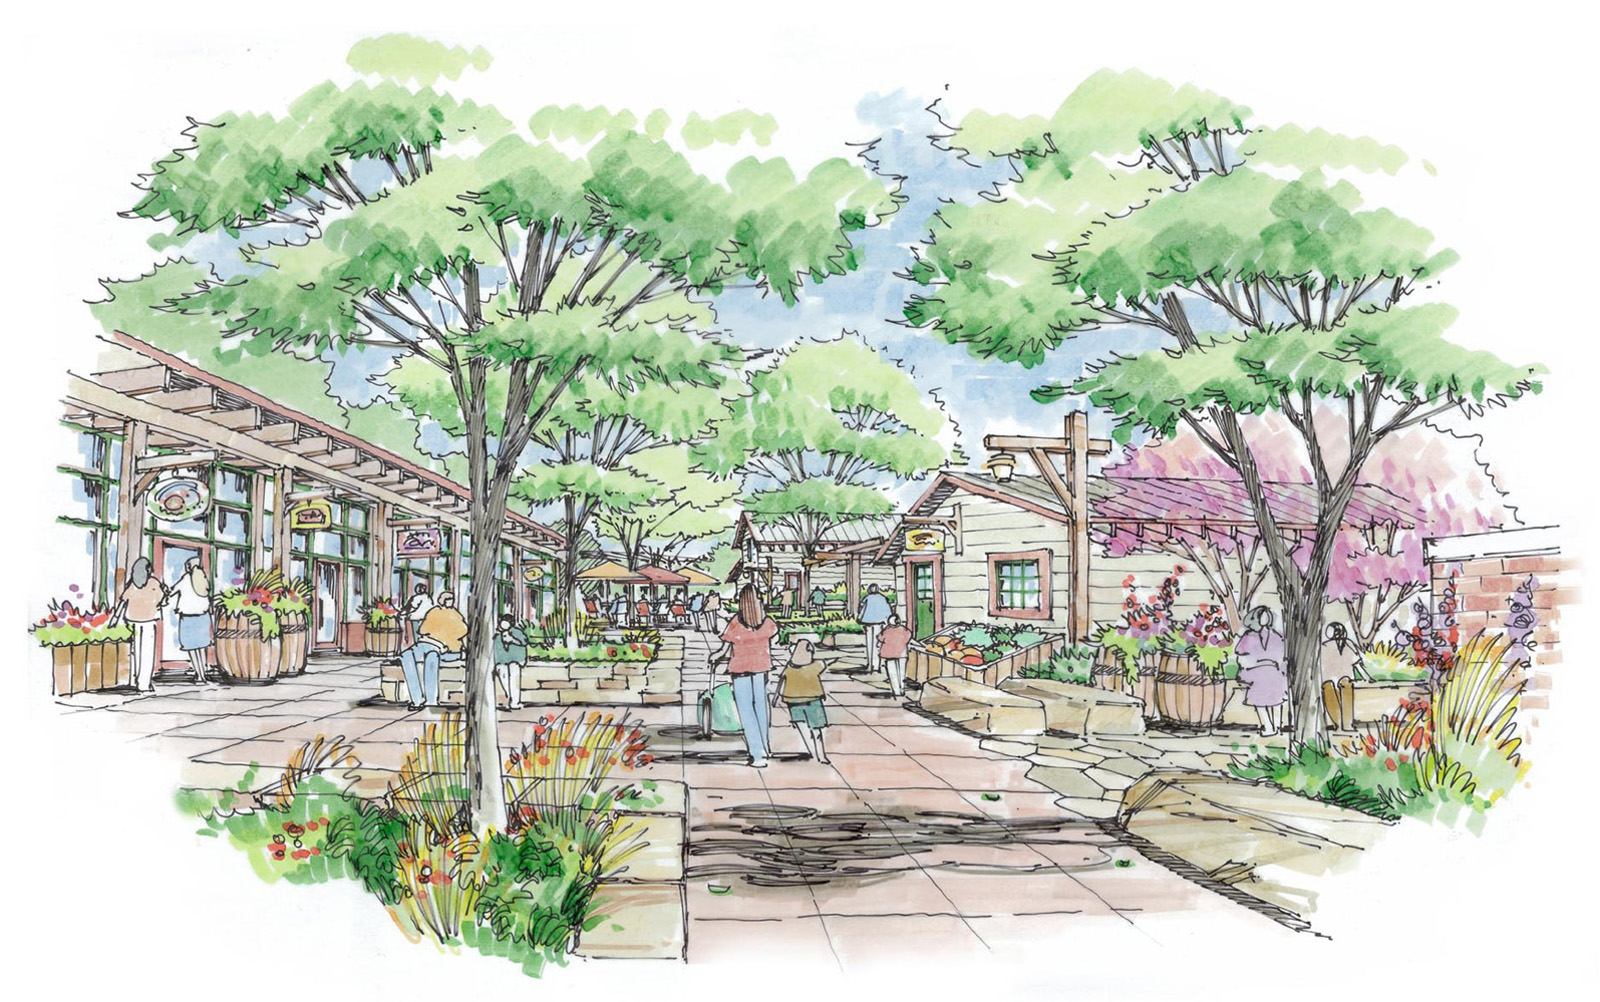 Sketch of the Jessup Farm Artisan Village